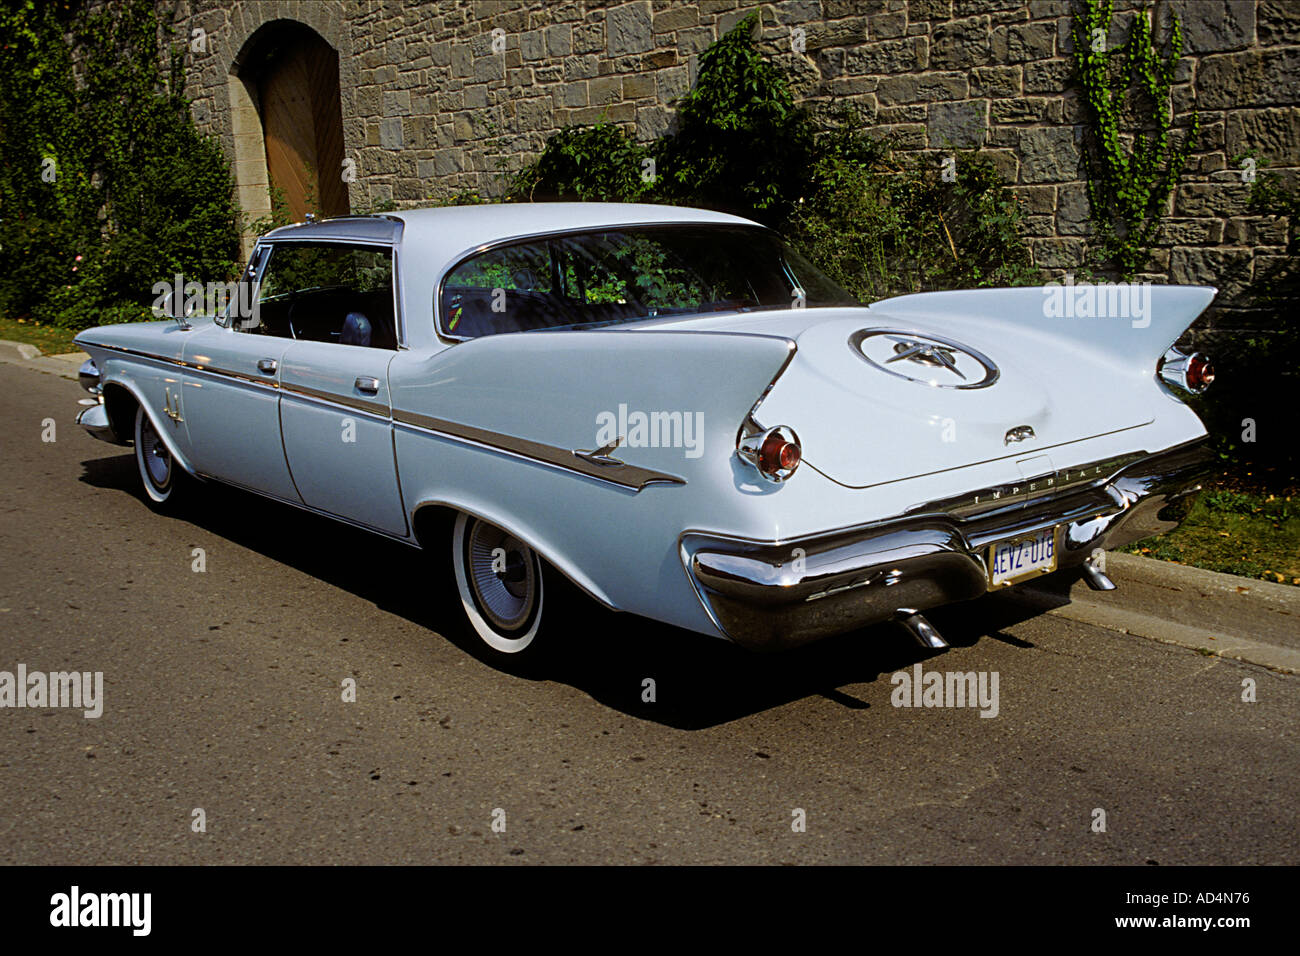 1961 Chrysler Imperial Crown Stock Photo Alamy